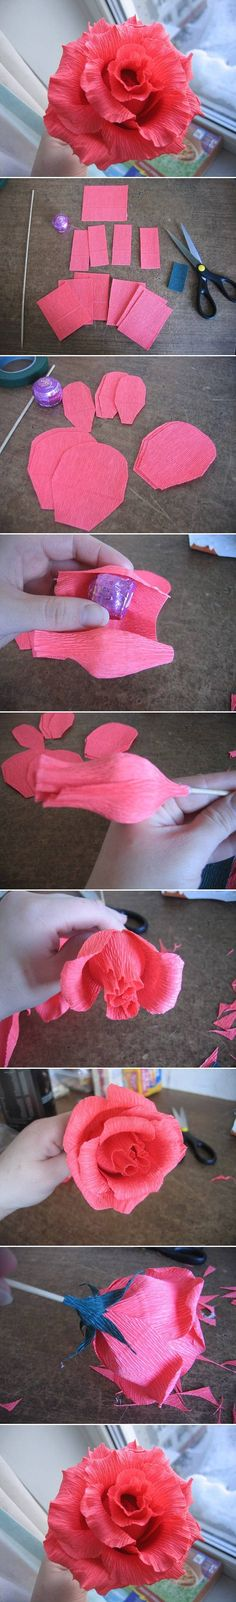 DIY : Rosa de papel crepom com chocolate*-*